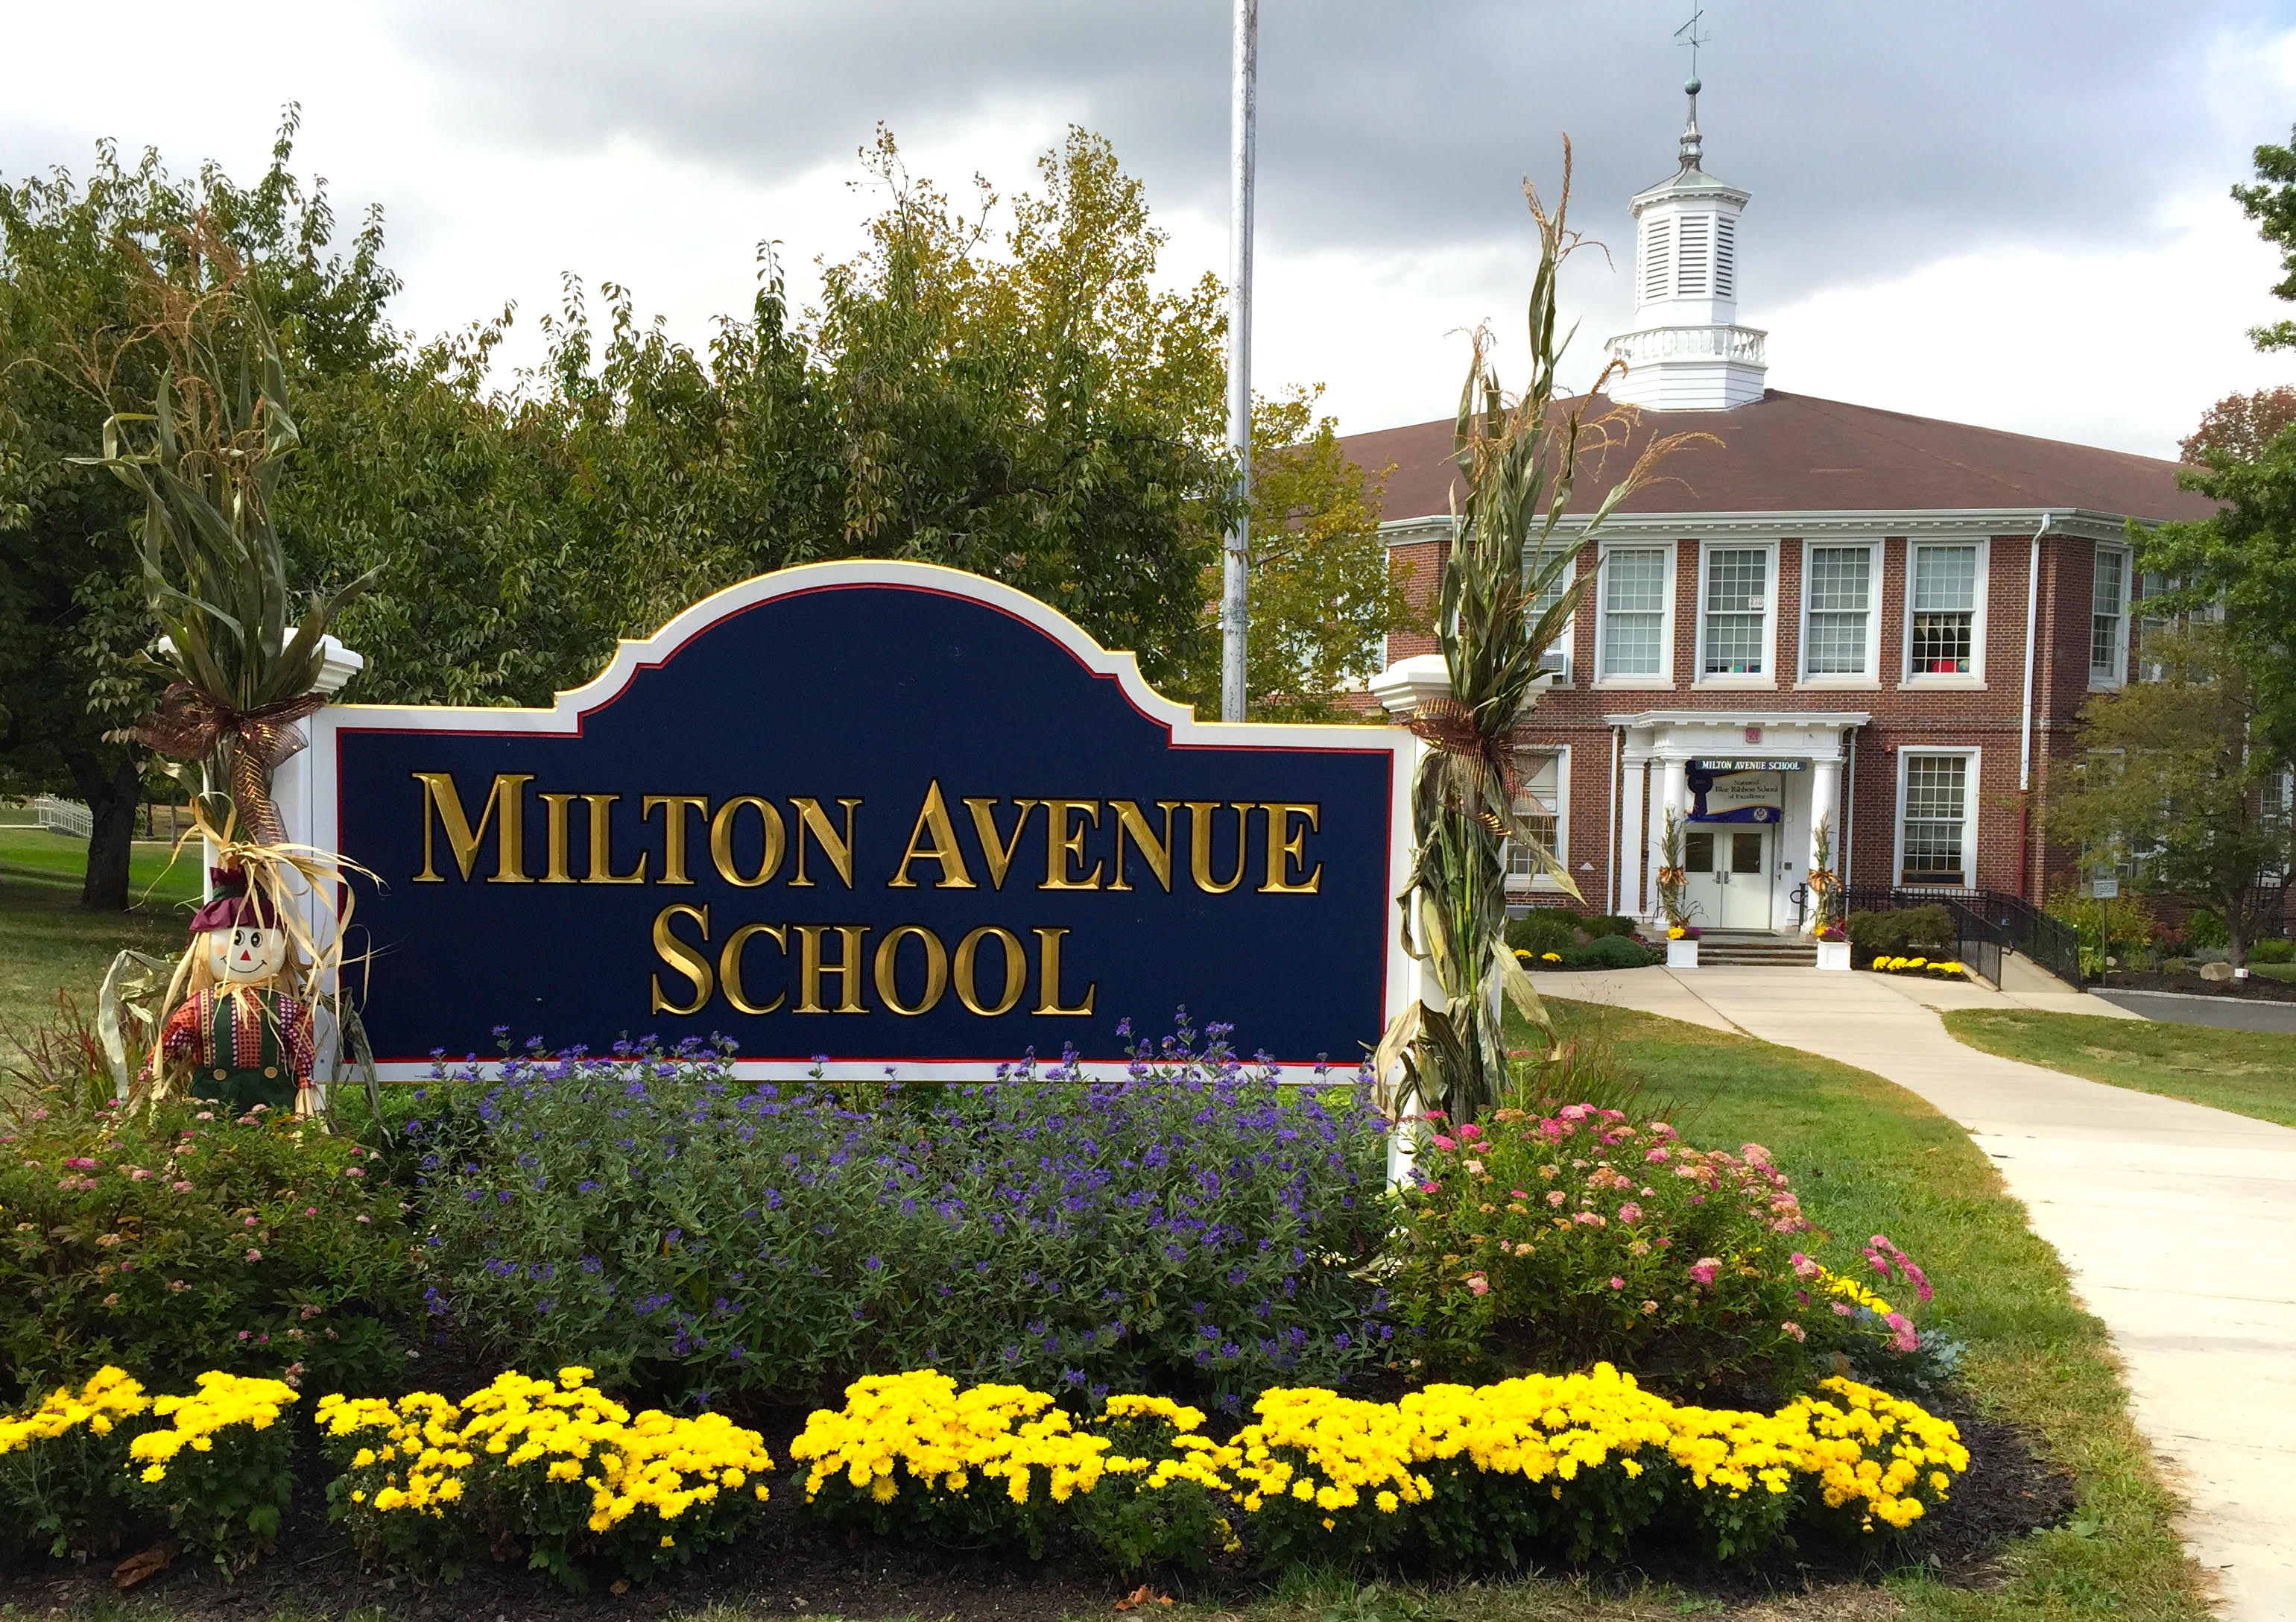 Milton Avenue School during the spring.